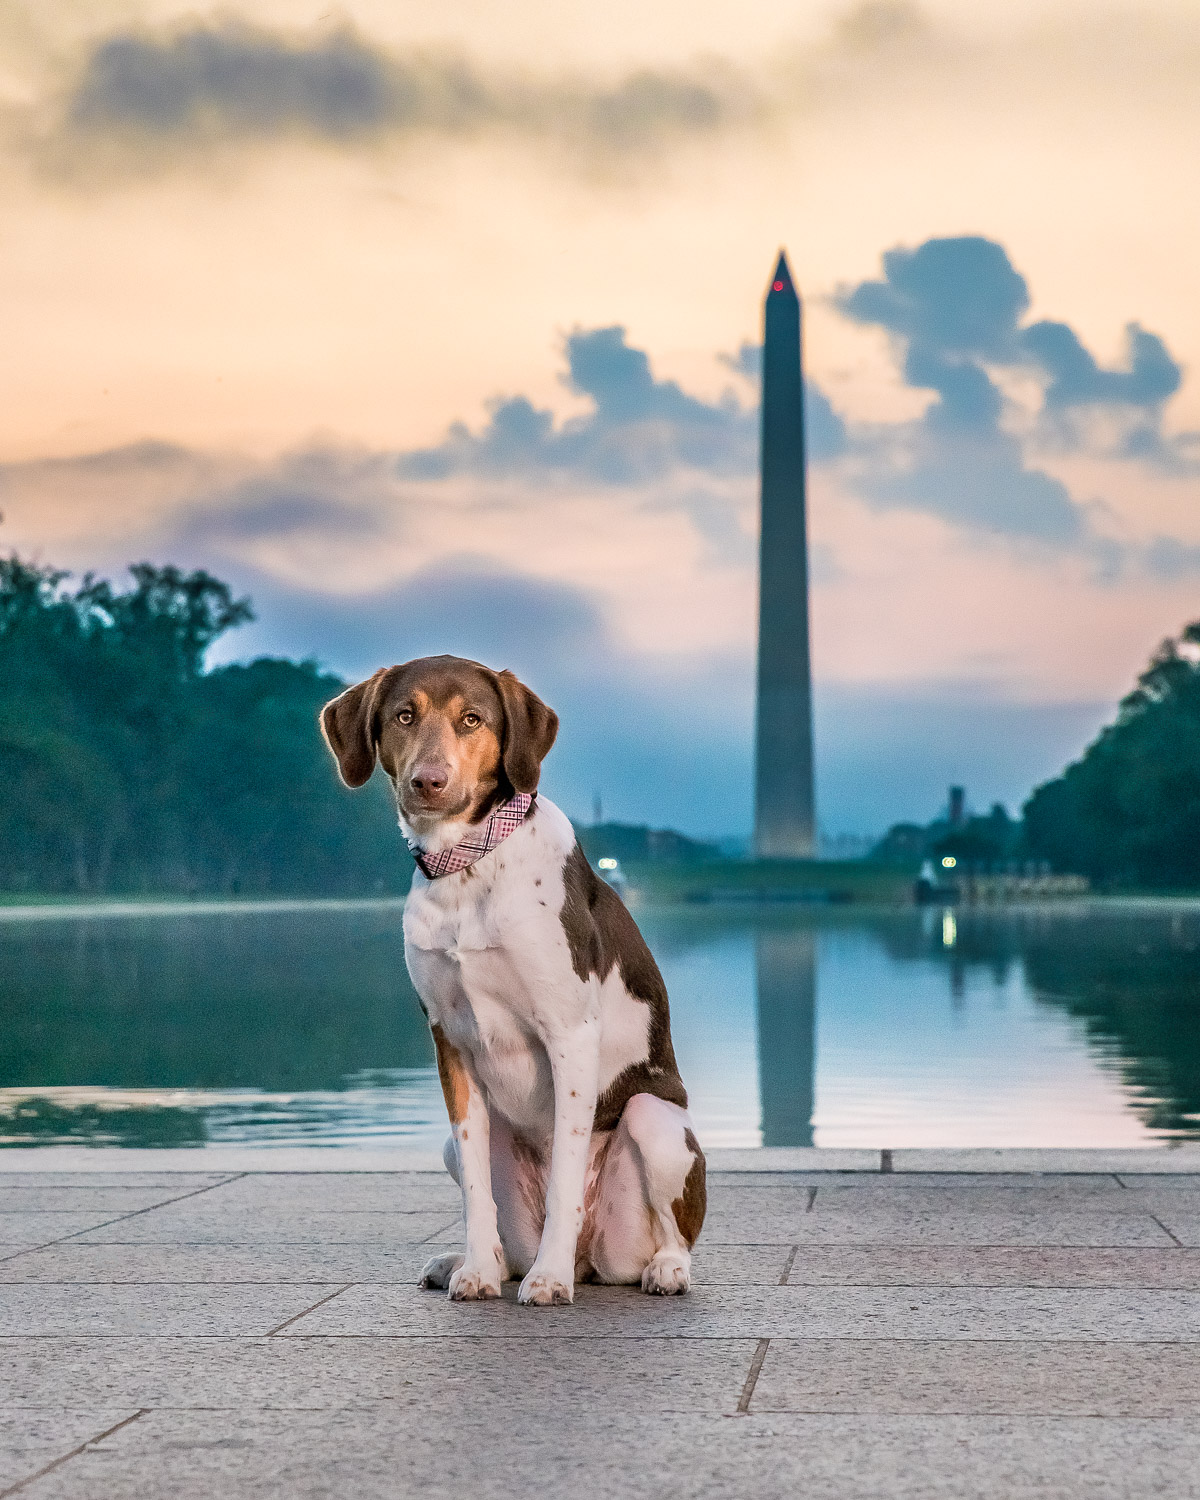 Here's another of Olivia, but this one is at sunrise with the Washington Monumnet in the background